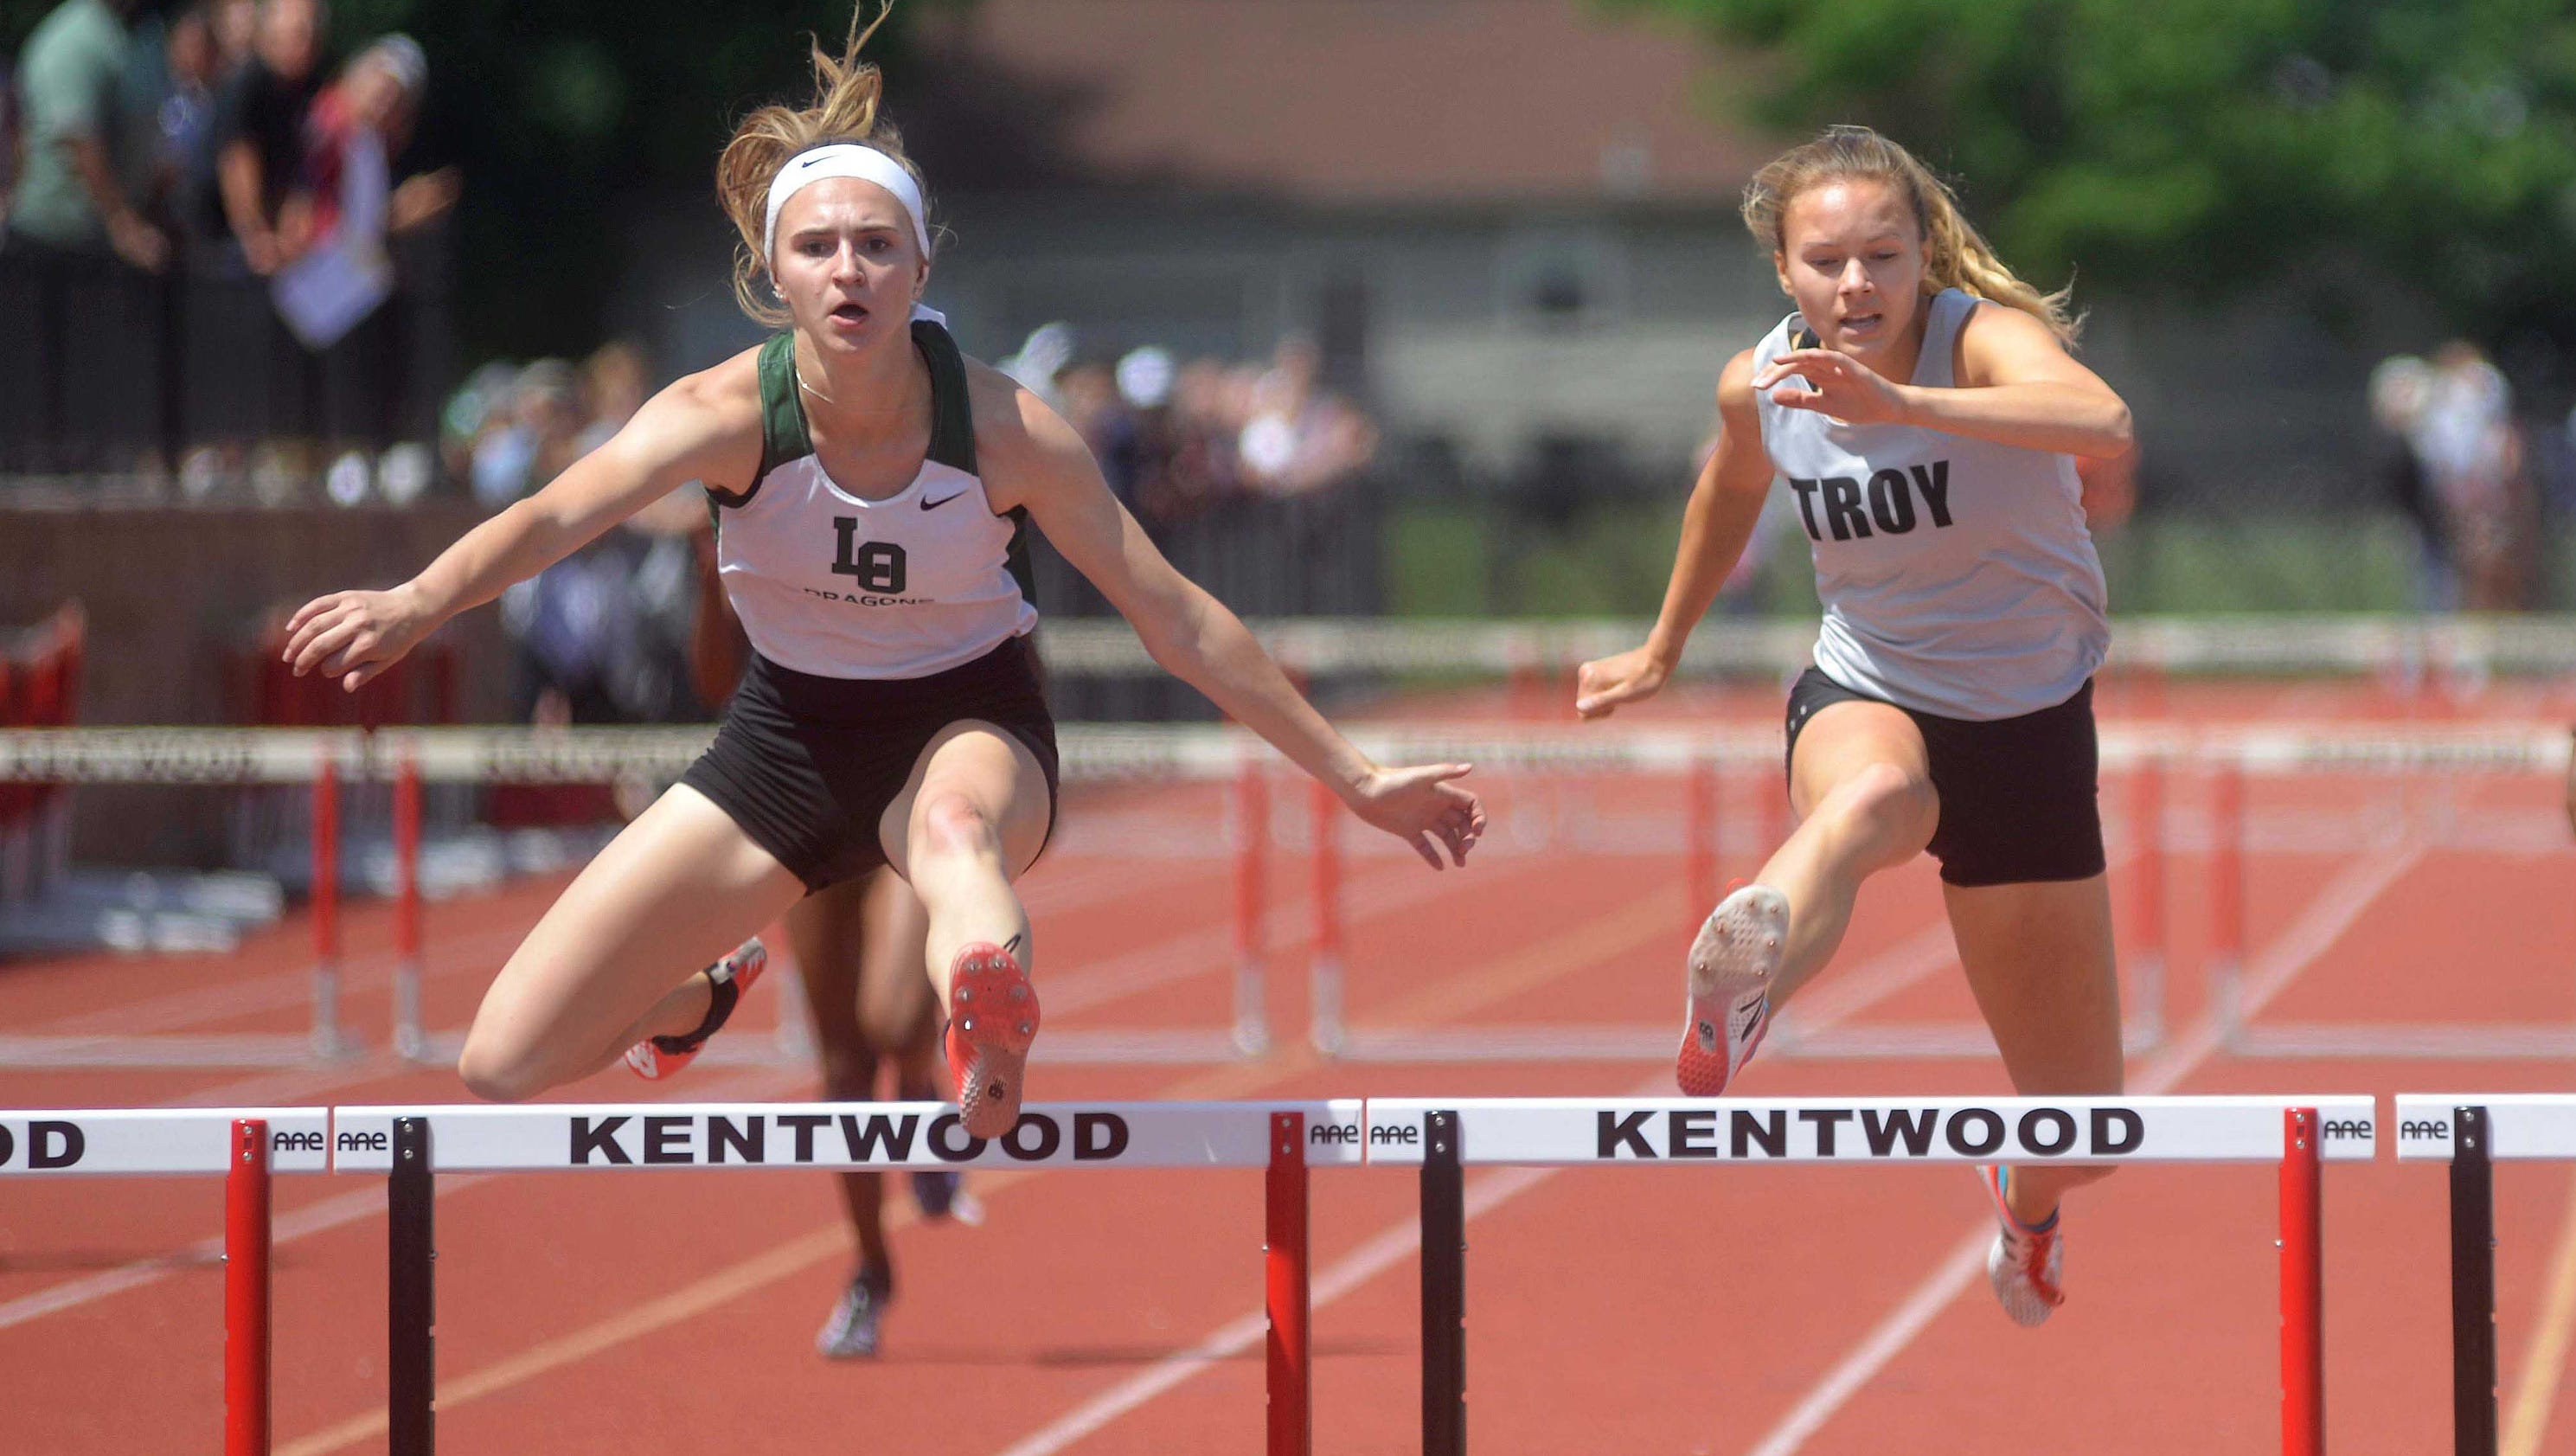 lake orion single catholic girls Mhsaa track and field state finals meet results  east kentwood 43 grand blanc 32 lake orion 29  mhsaa track and field state finals meet results.